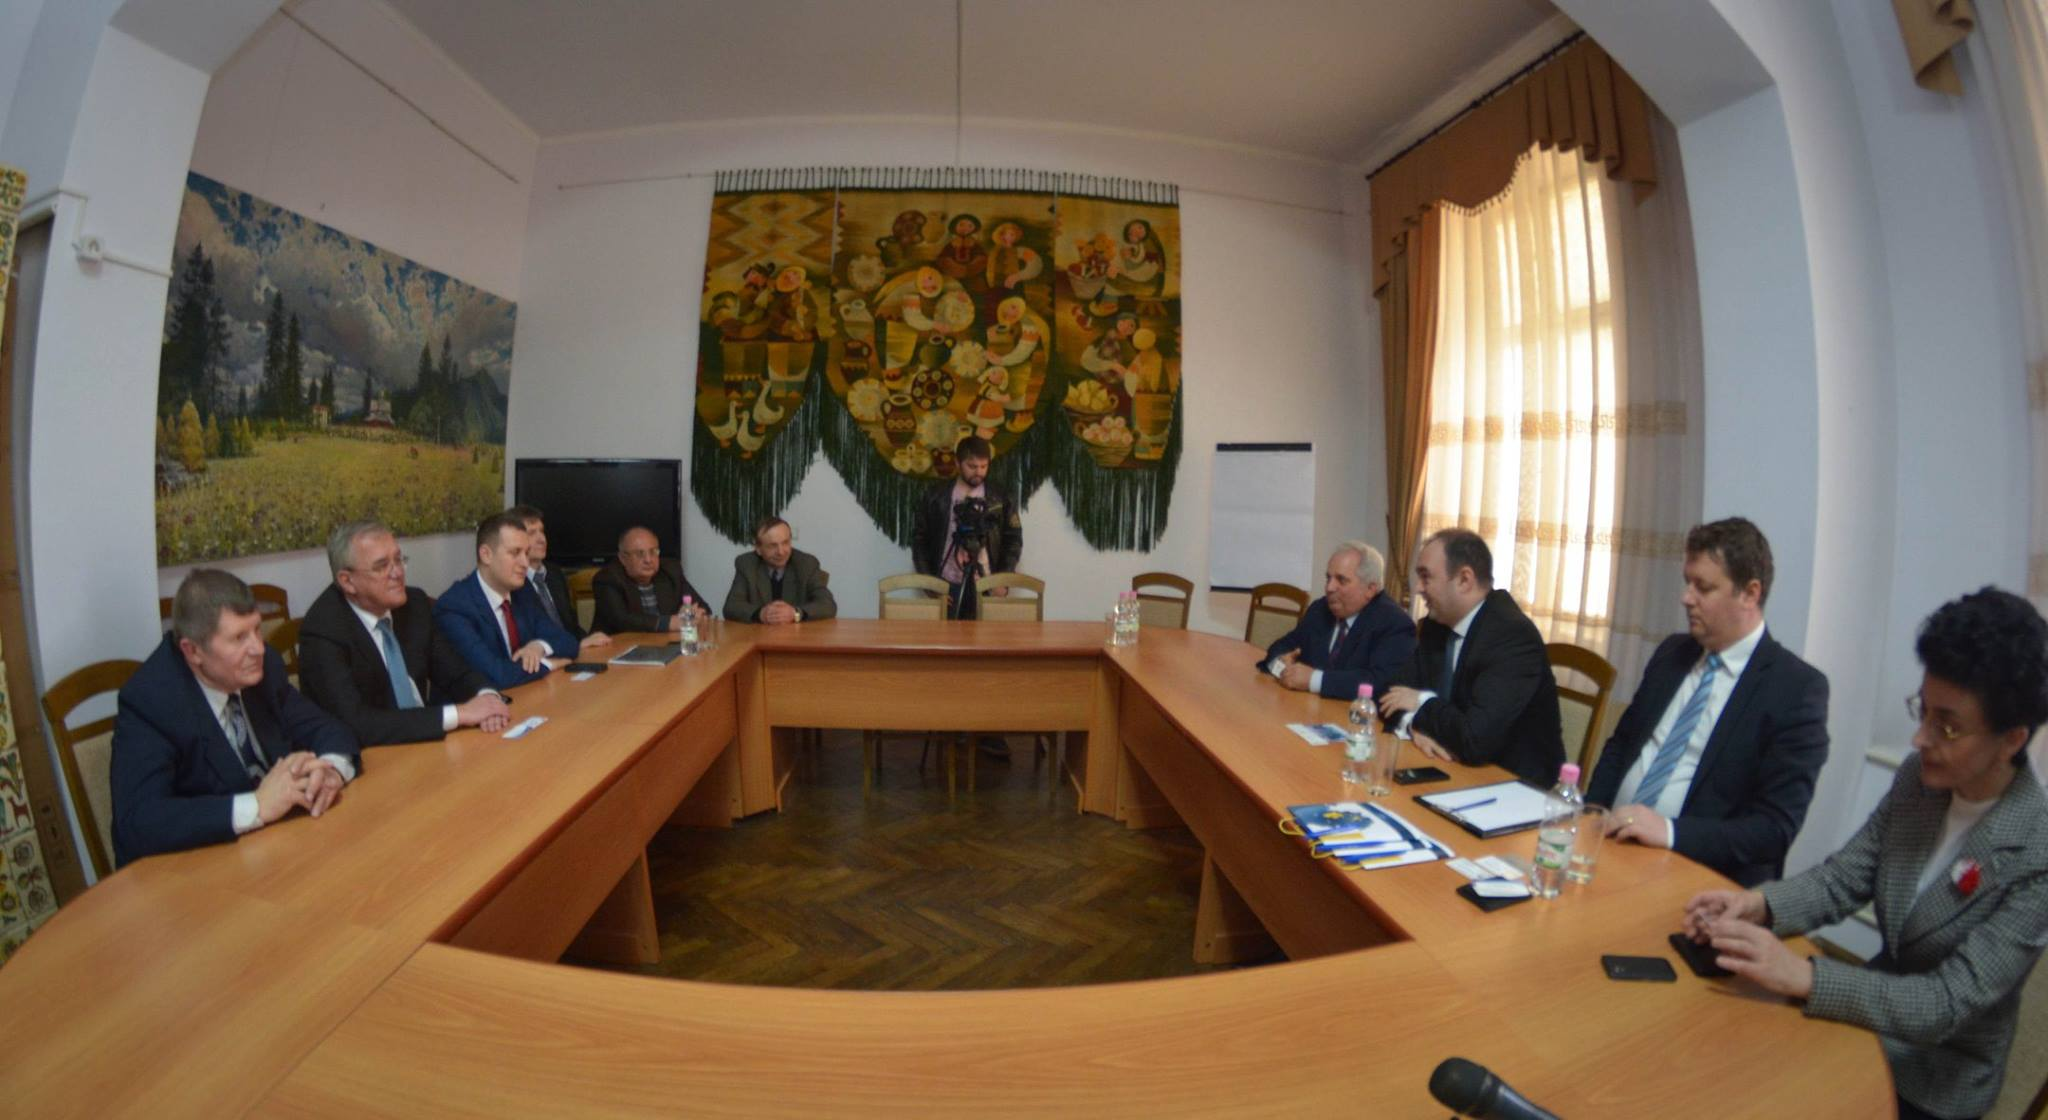 "<a class=""amazingslider-posttitle-link"" href=""http://www.euroregiune.org/en/visit-ivano-frankivsk-ukraine-25-26-march-2015/"" target=""_self"">Visit at Ivano-Frankivsk, Ukraine 25-26 March 2015</a>"